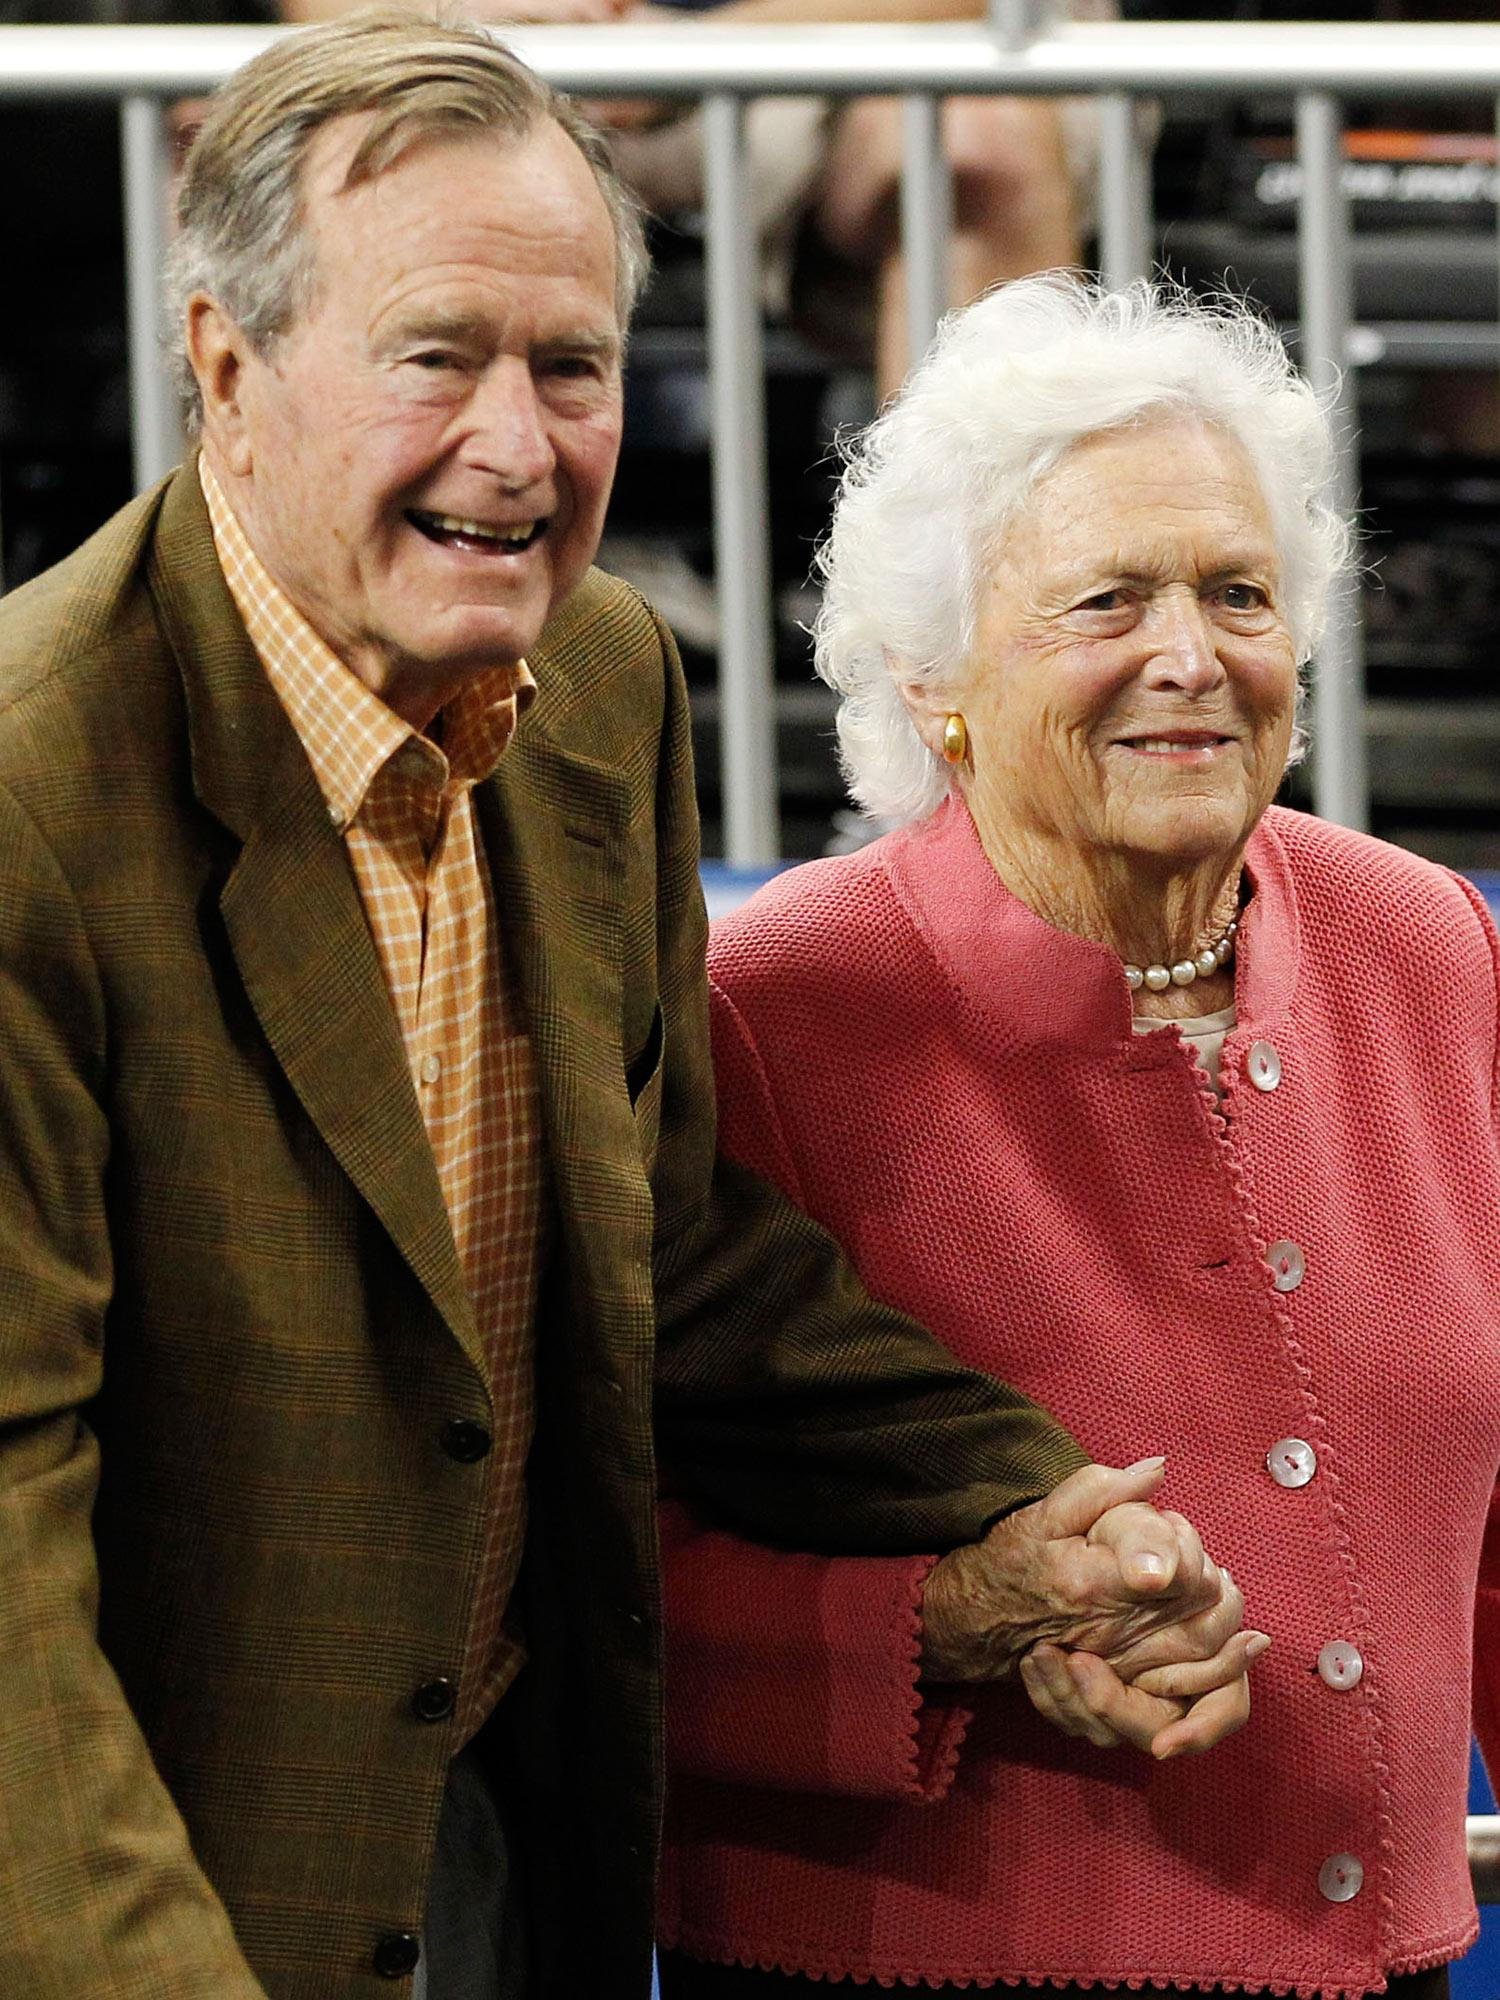 Barbara Bush Admitted to Hospital as President George H.W. Bush Remains in ICU